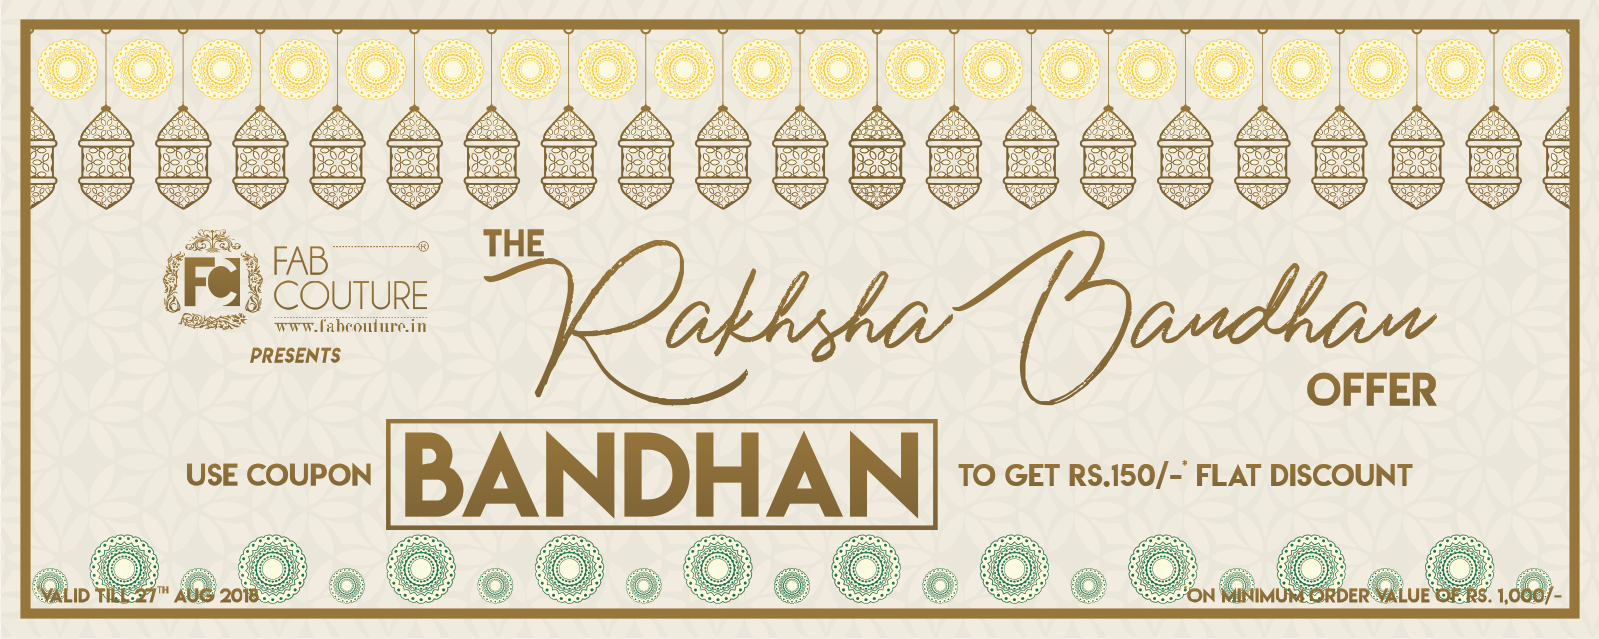 The Raksha Bandhan Offer by FabCouture